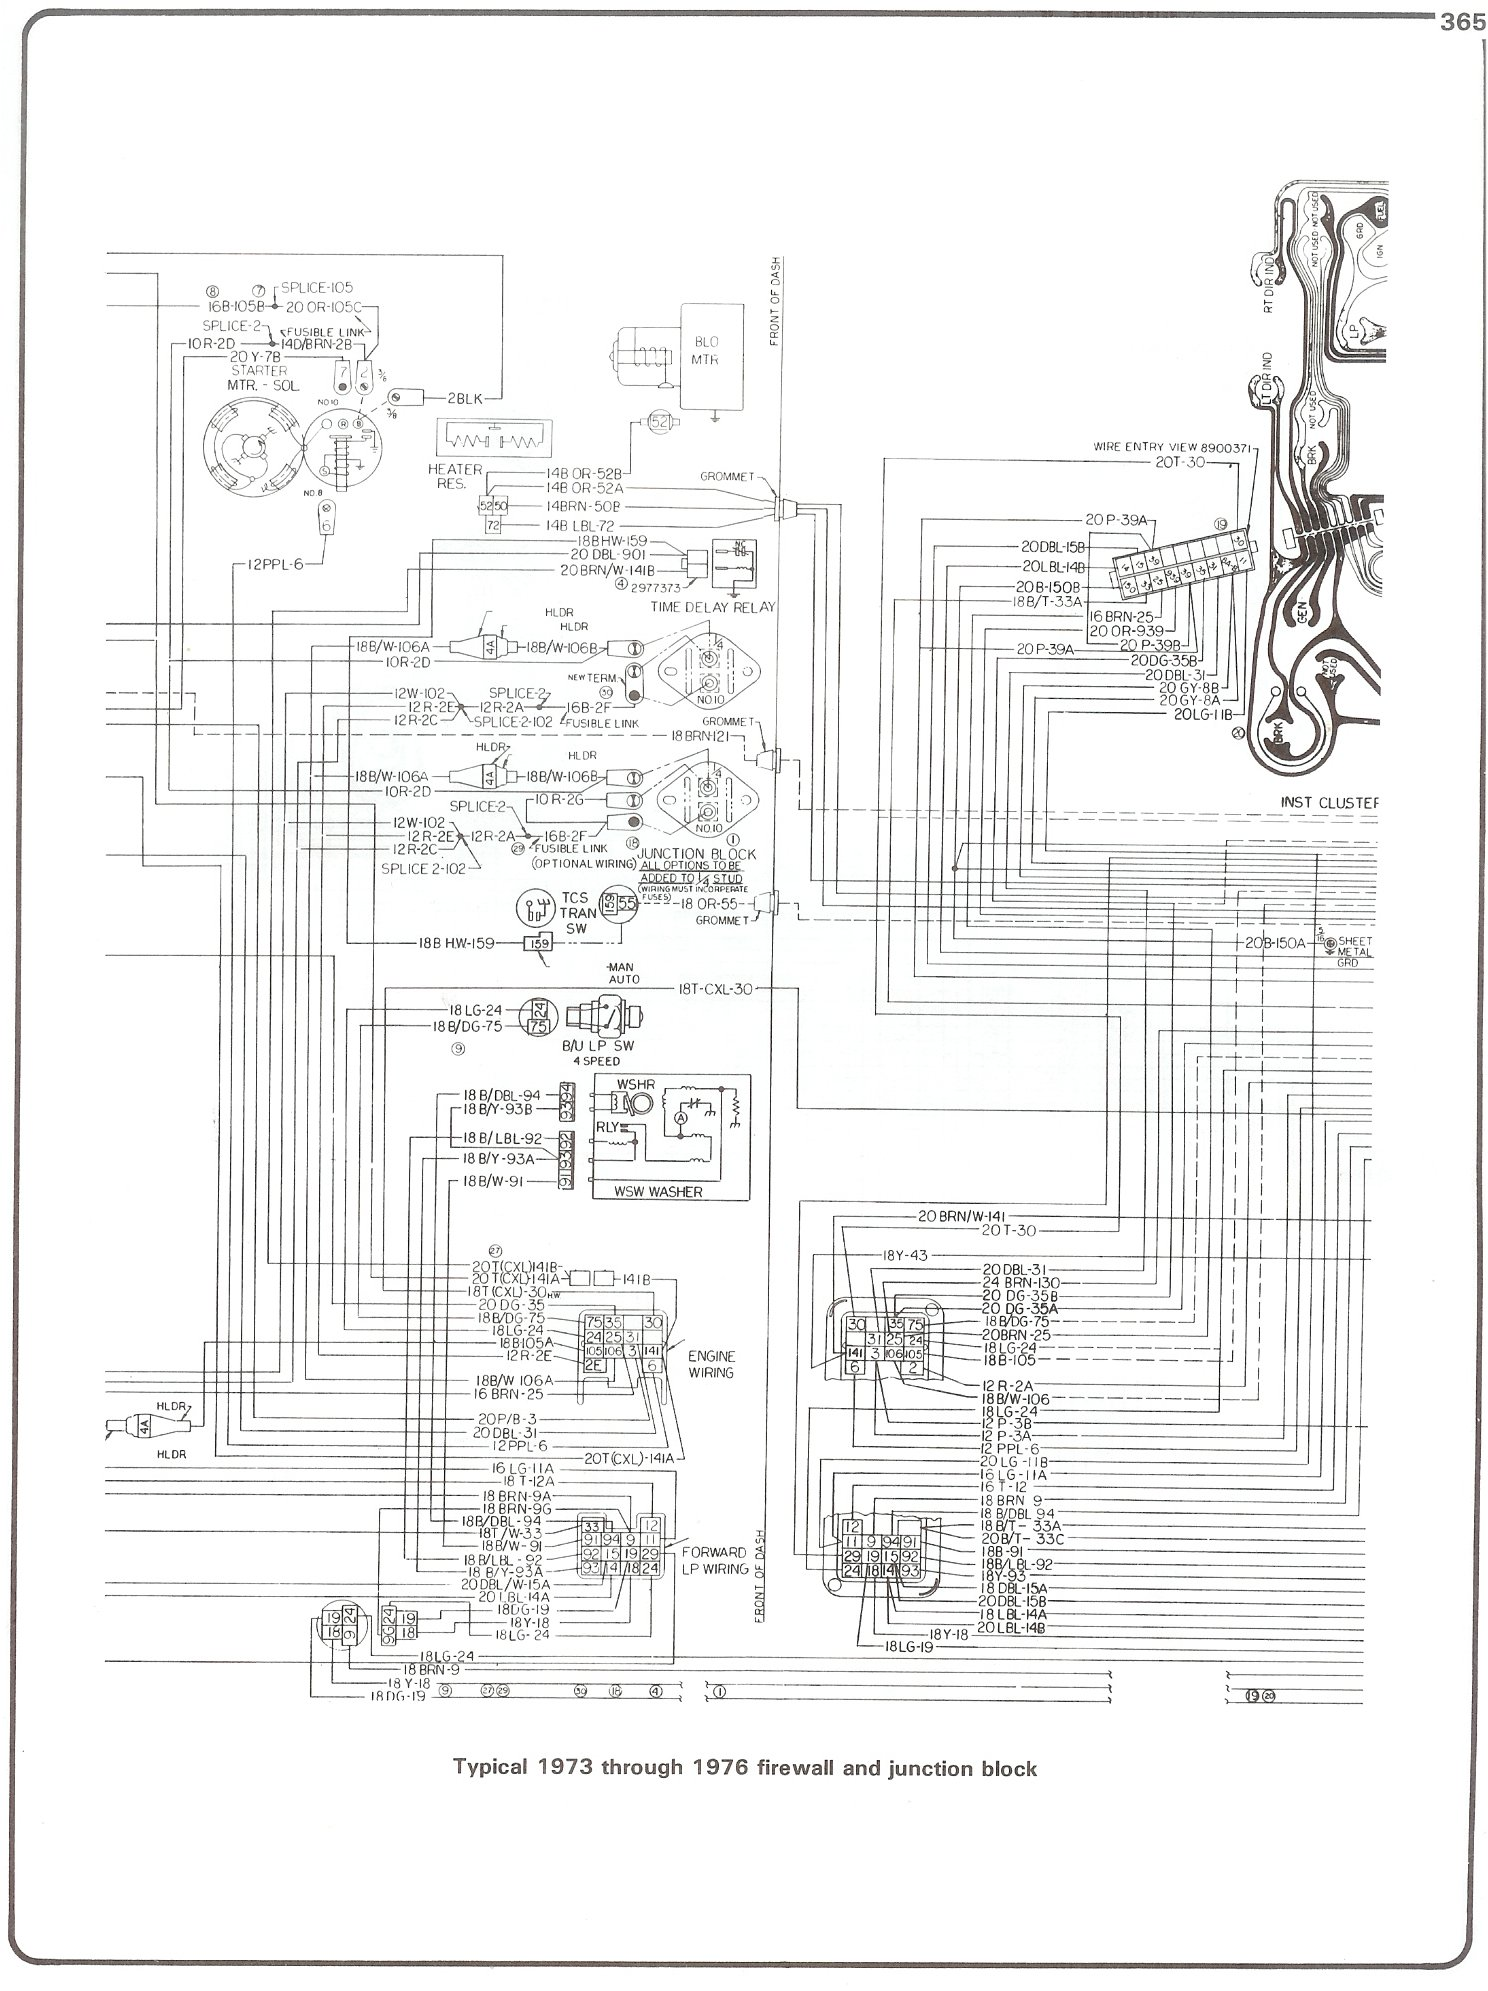 81 chevy truck wiring harness diagram